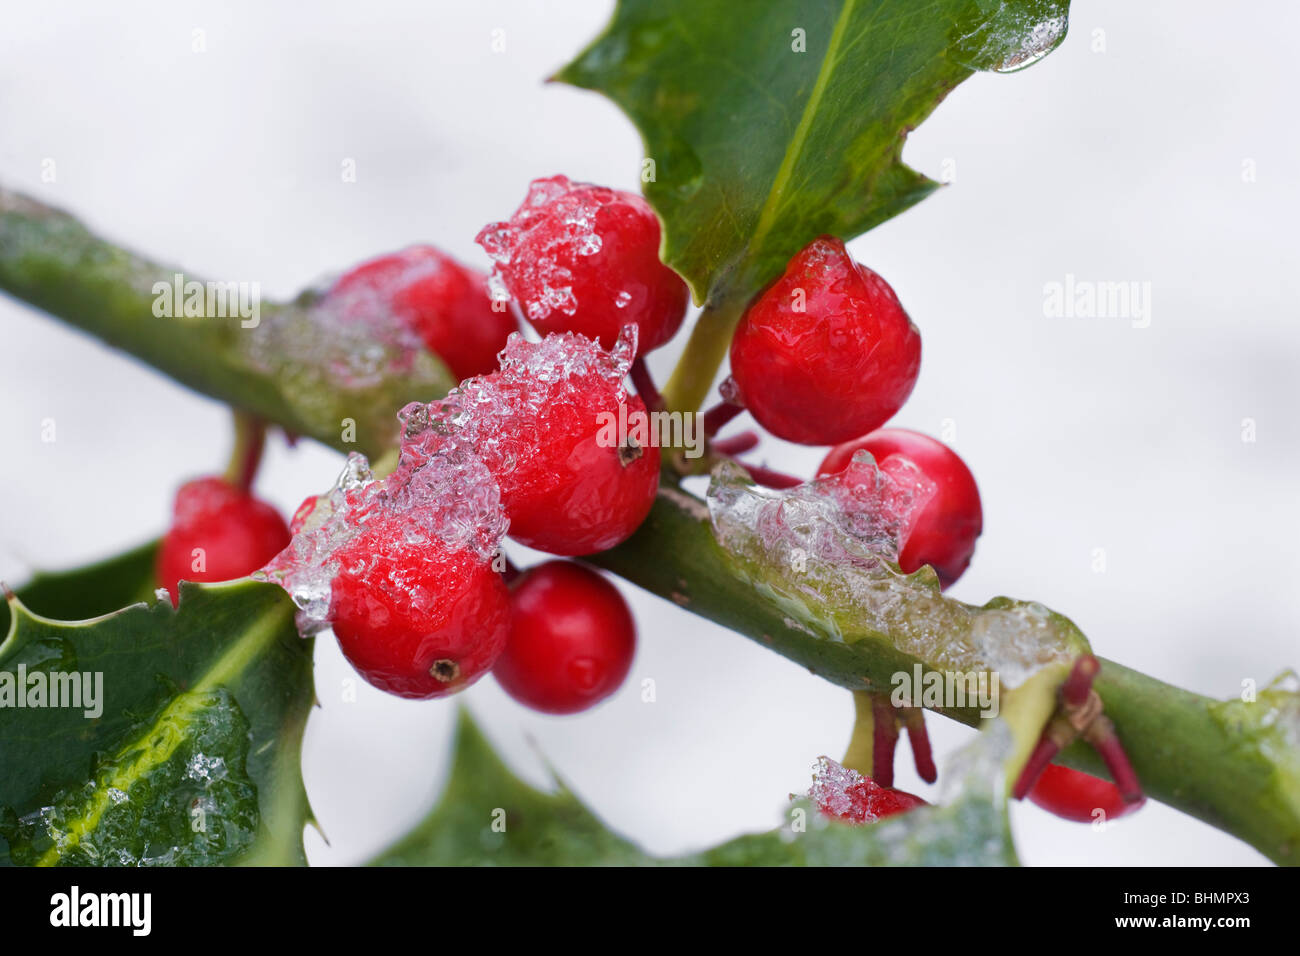 European Holly (Ilex aquifolium) red berries and leaves in the snow in winter - Stock Image